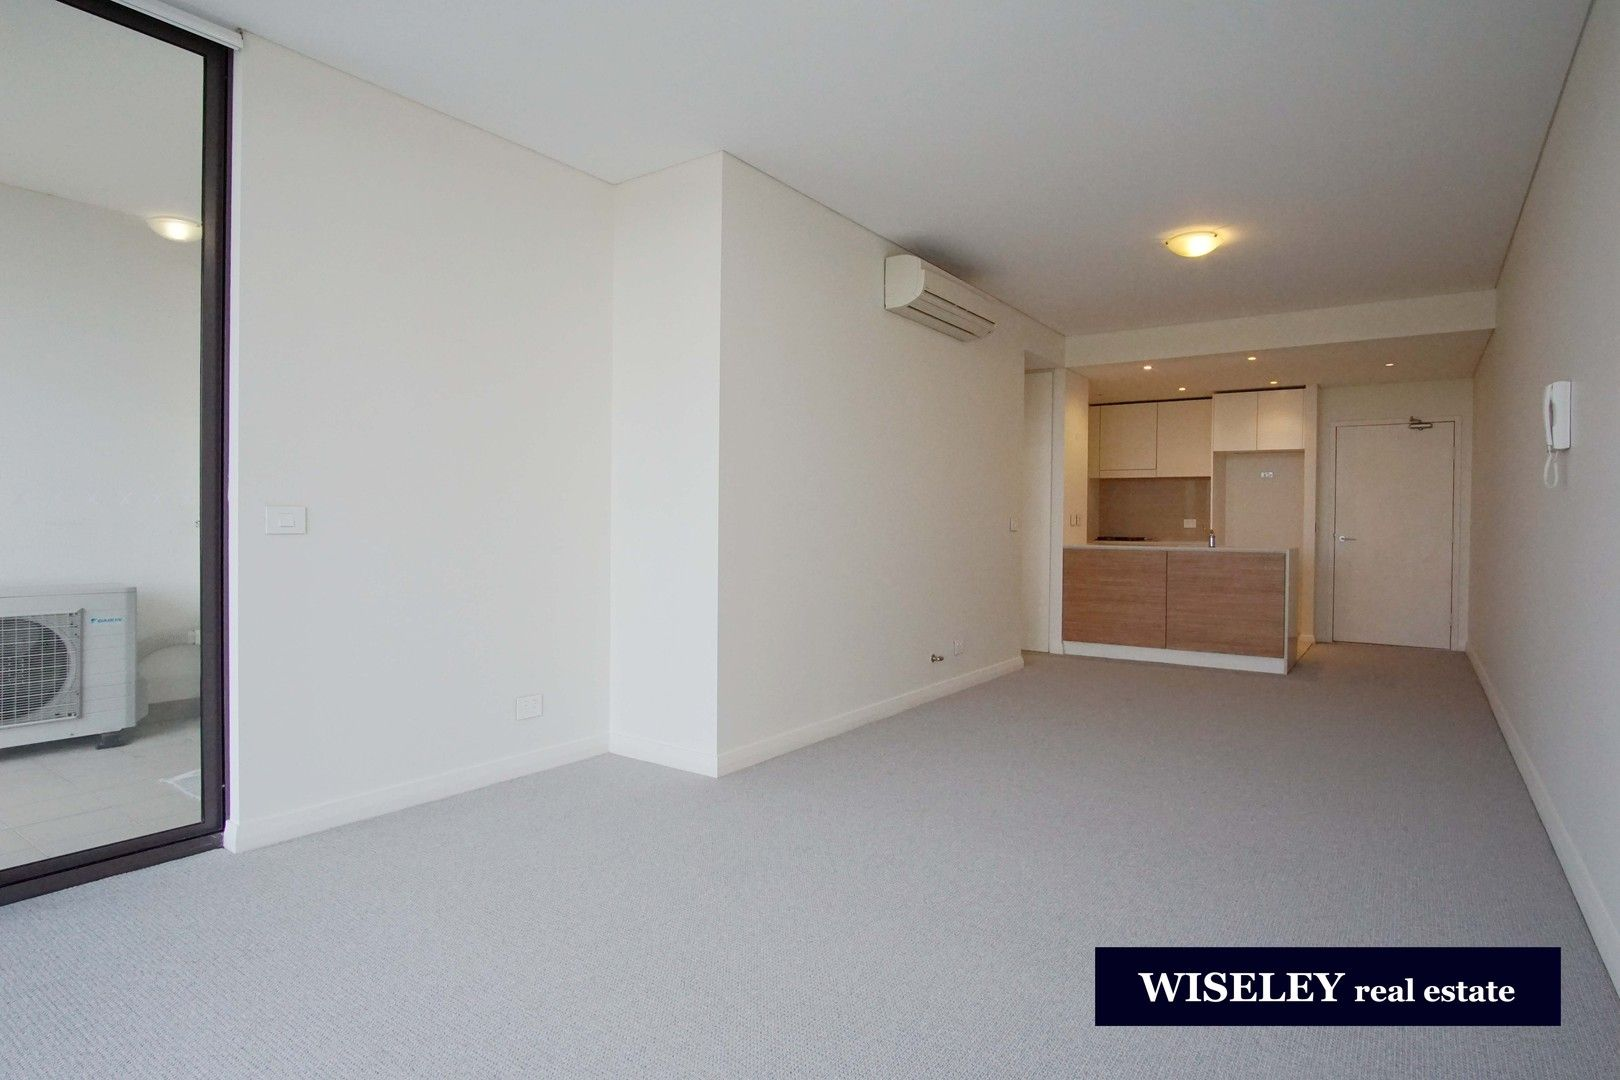 1 bedrooms Apartment / Unit / Flat in 706/25 Hill Road WENTWORTH POINT NSW, 2127